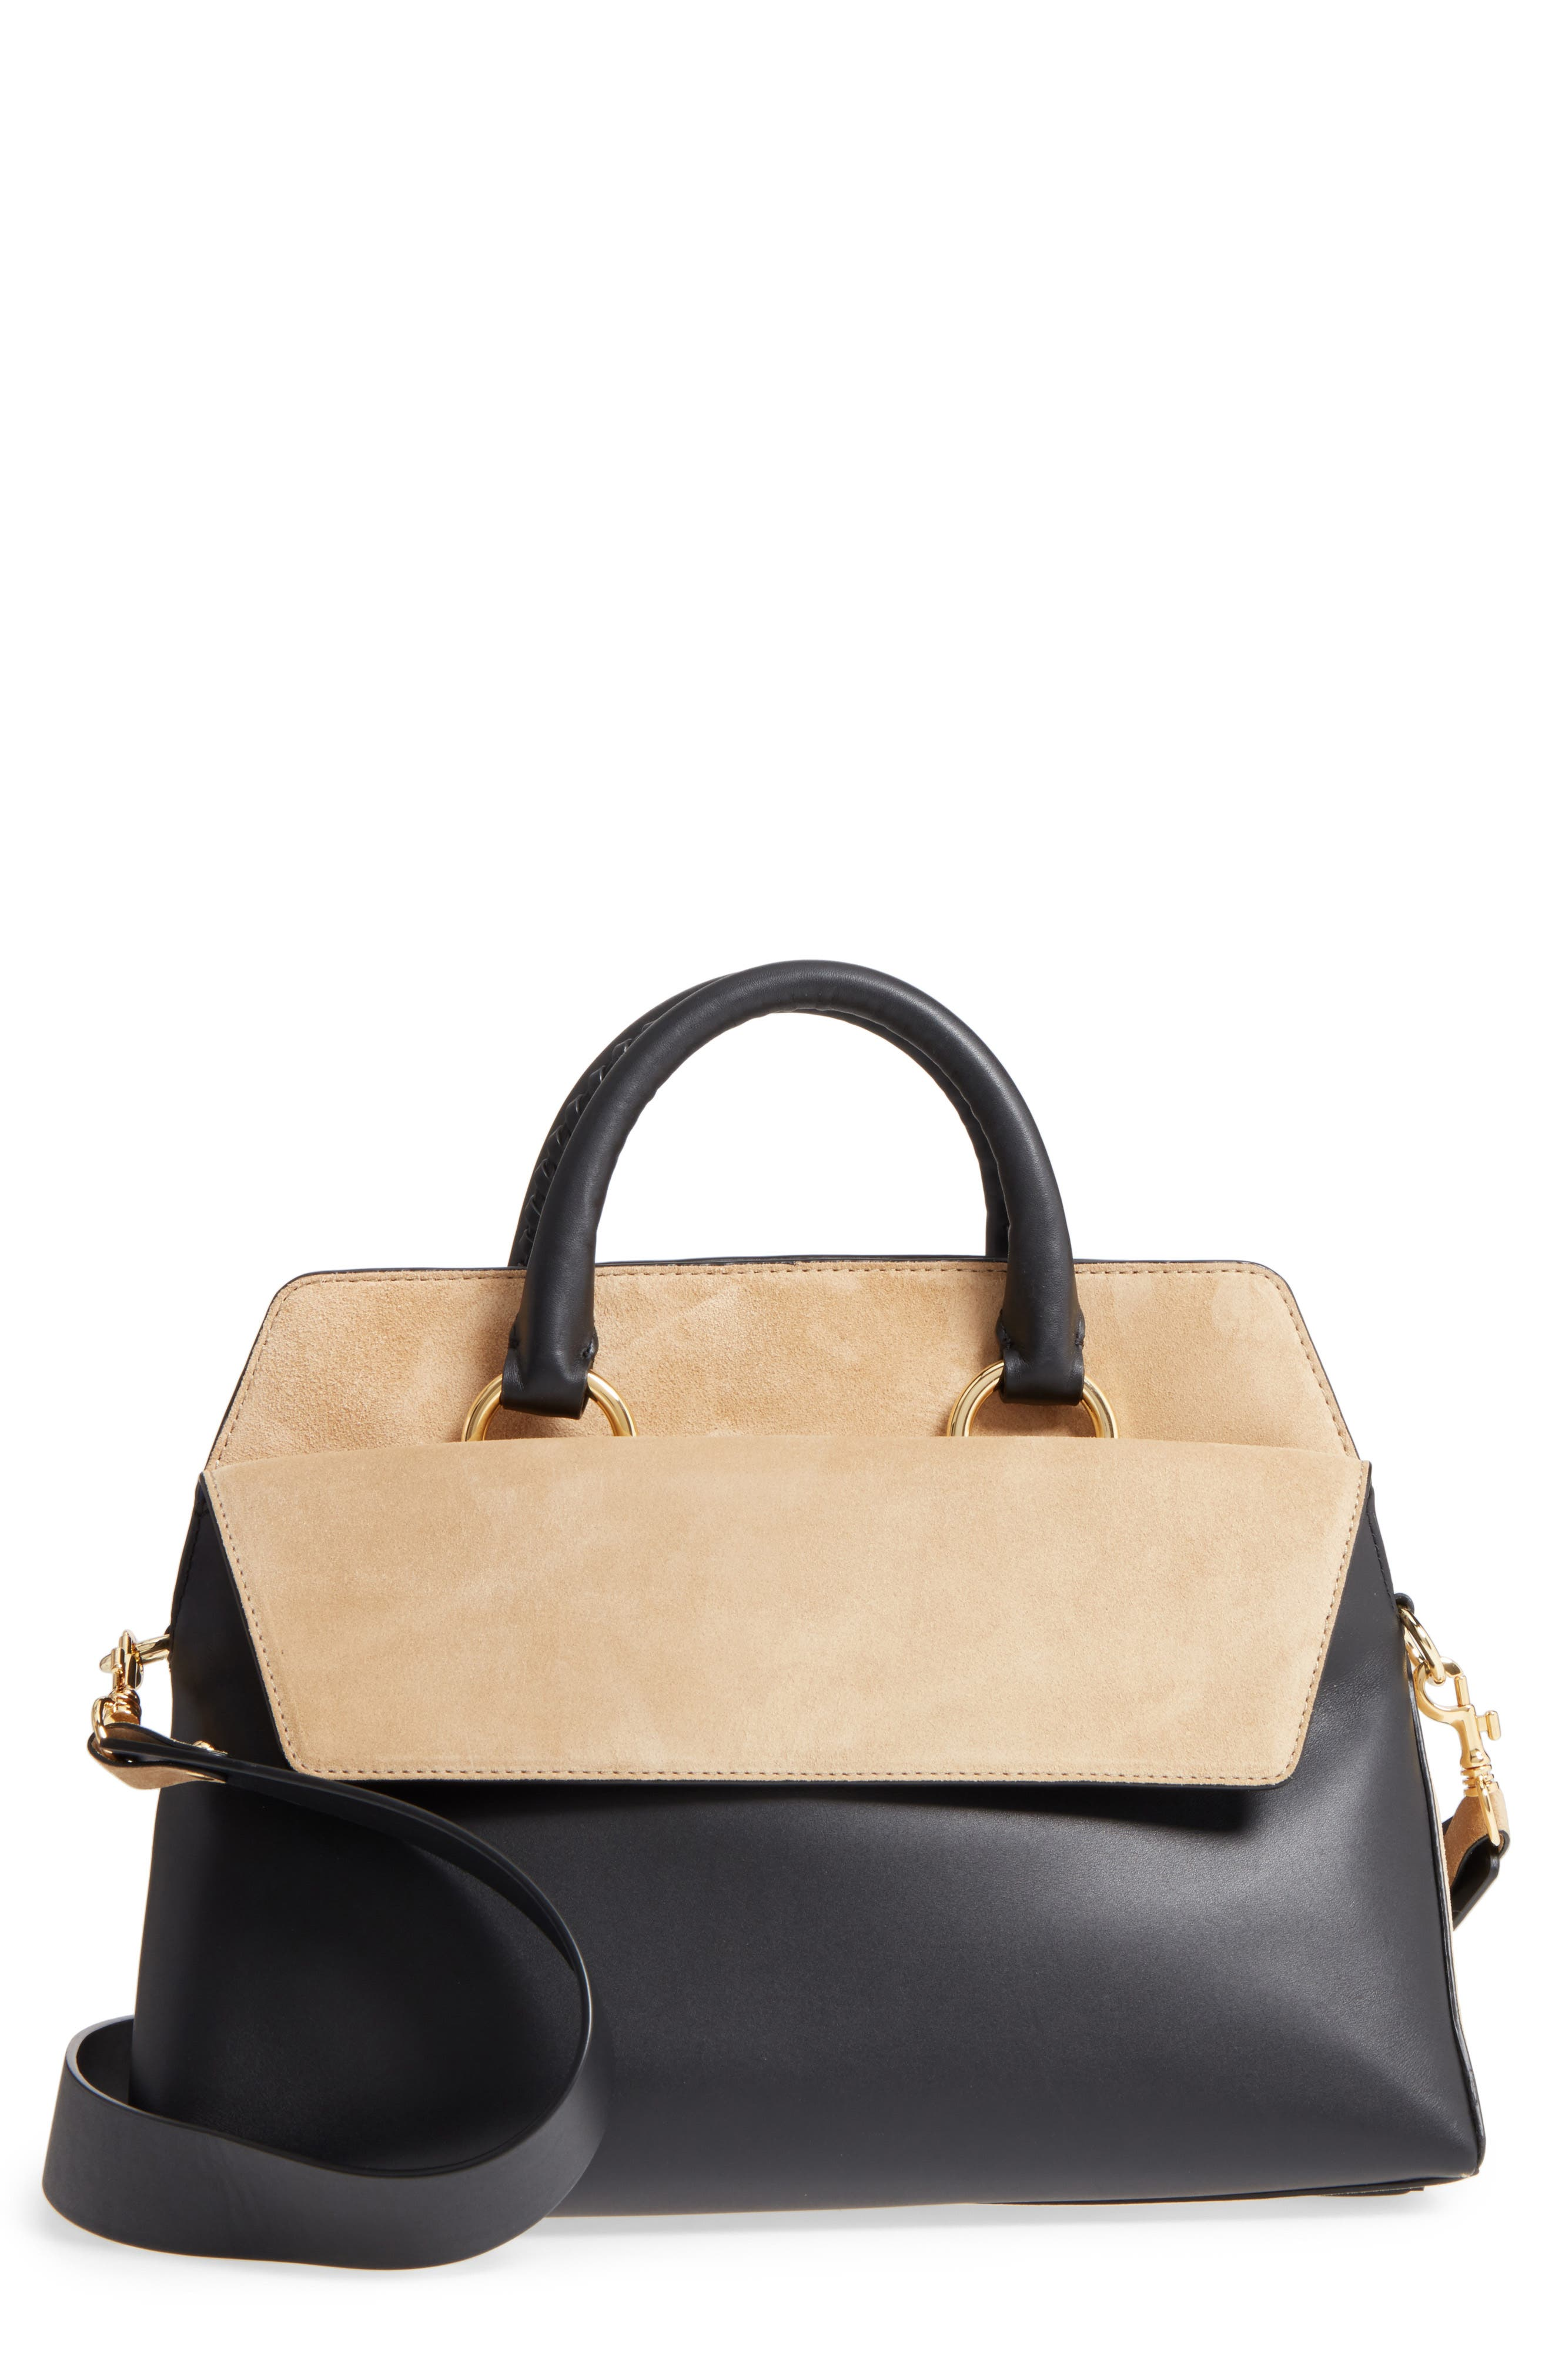 Main Image - Diane von Furstenberg Large Leather & Suede Satchel